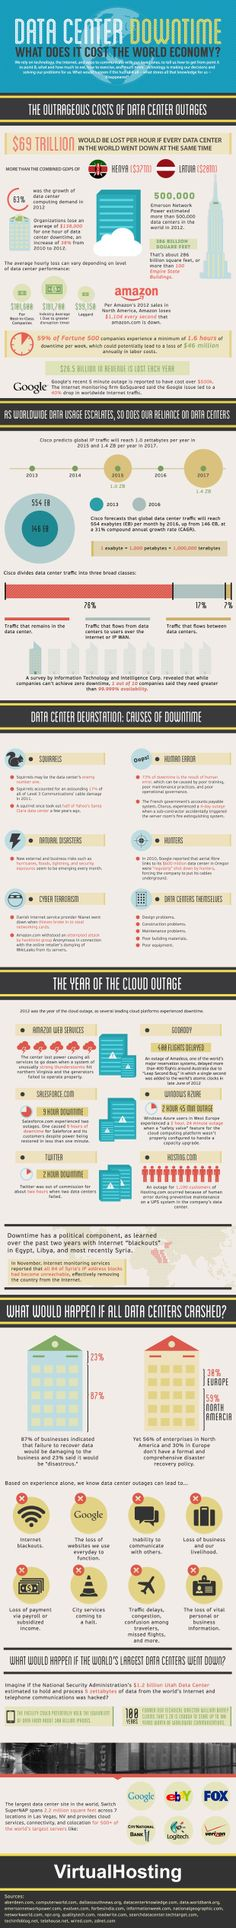 The outrageous costs of data center downtime -- a nifty infographic loaded with facts, figures and trivia